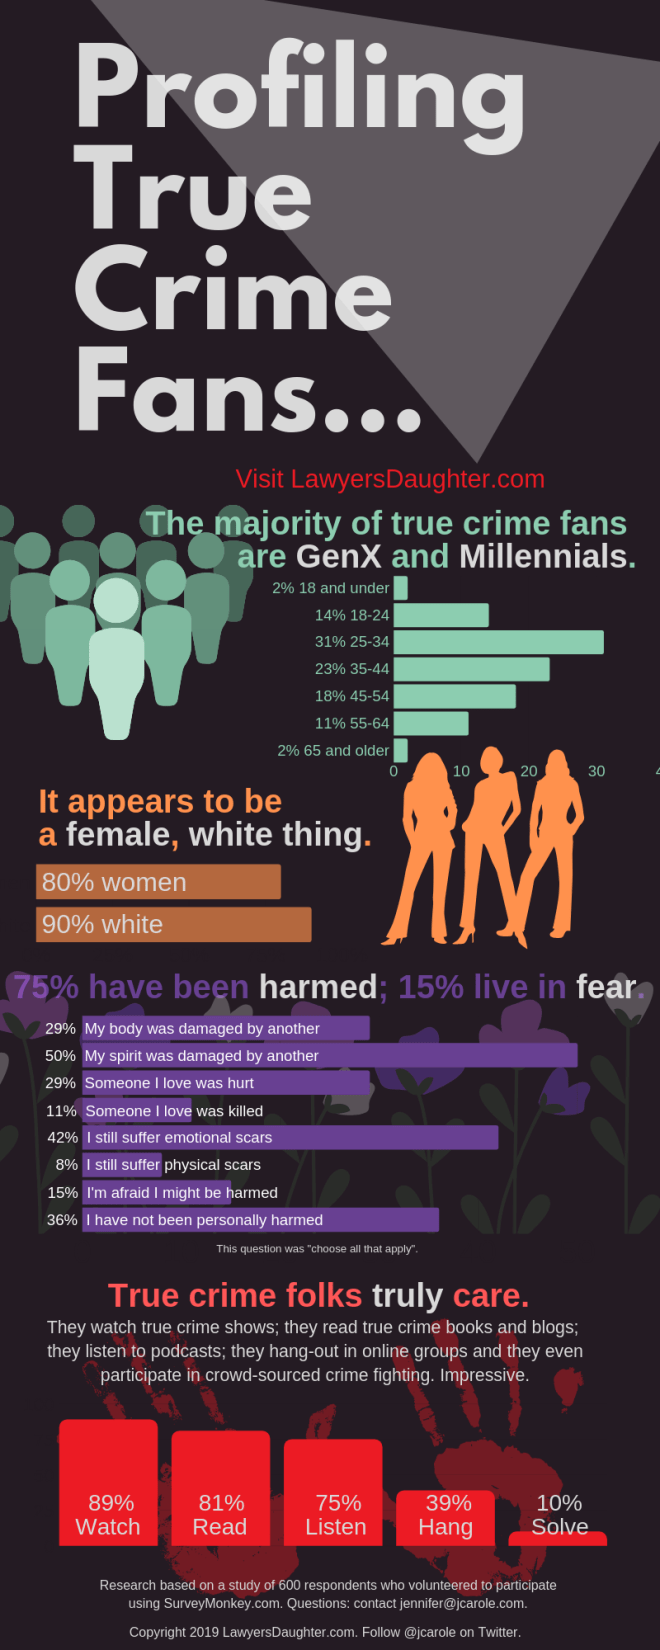 True Crime Profiling Infographic from LawyersDaughter.com